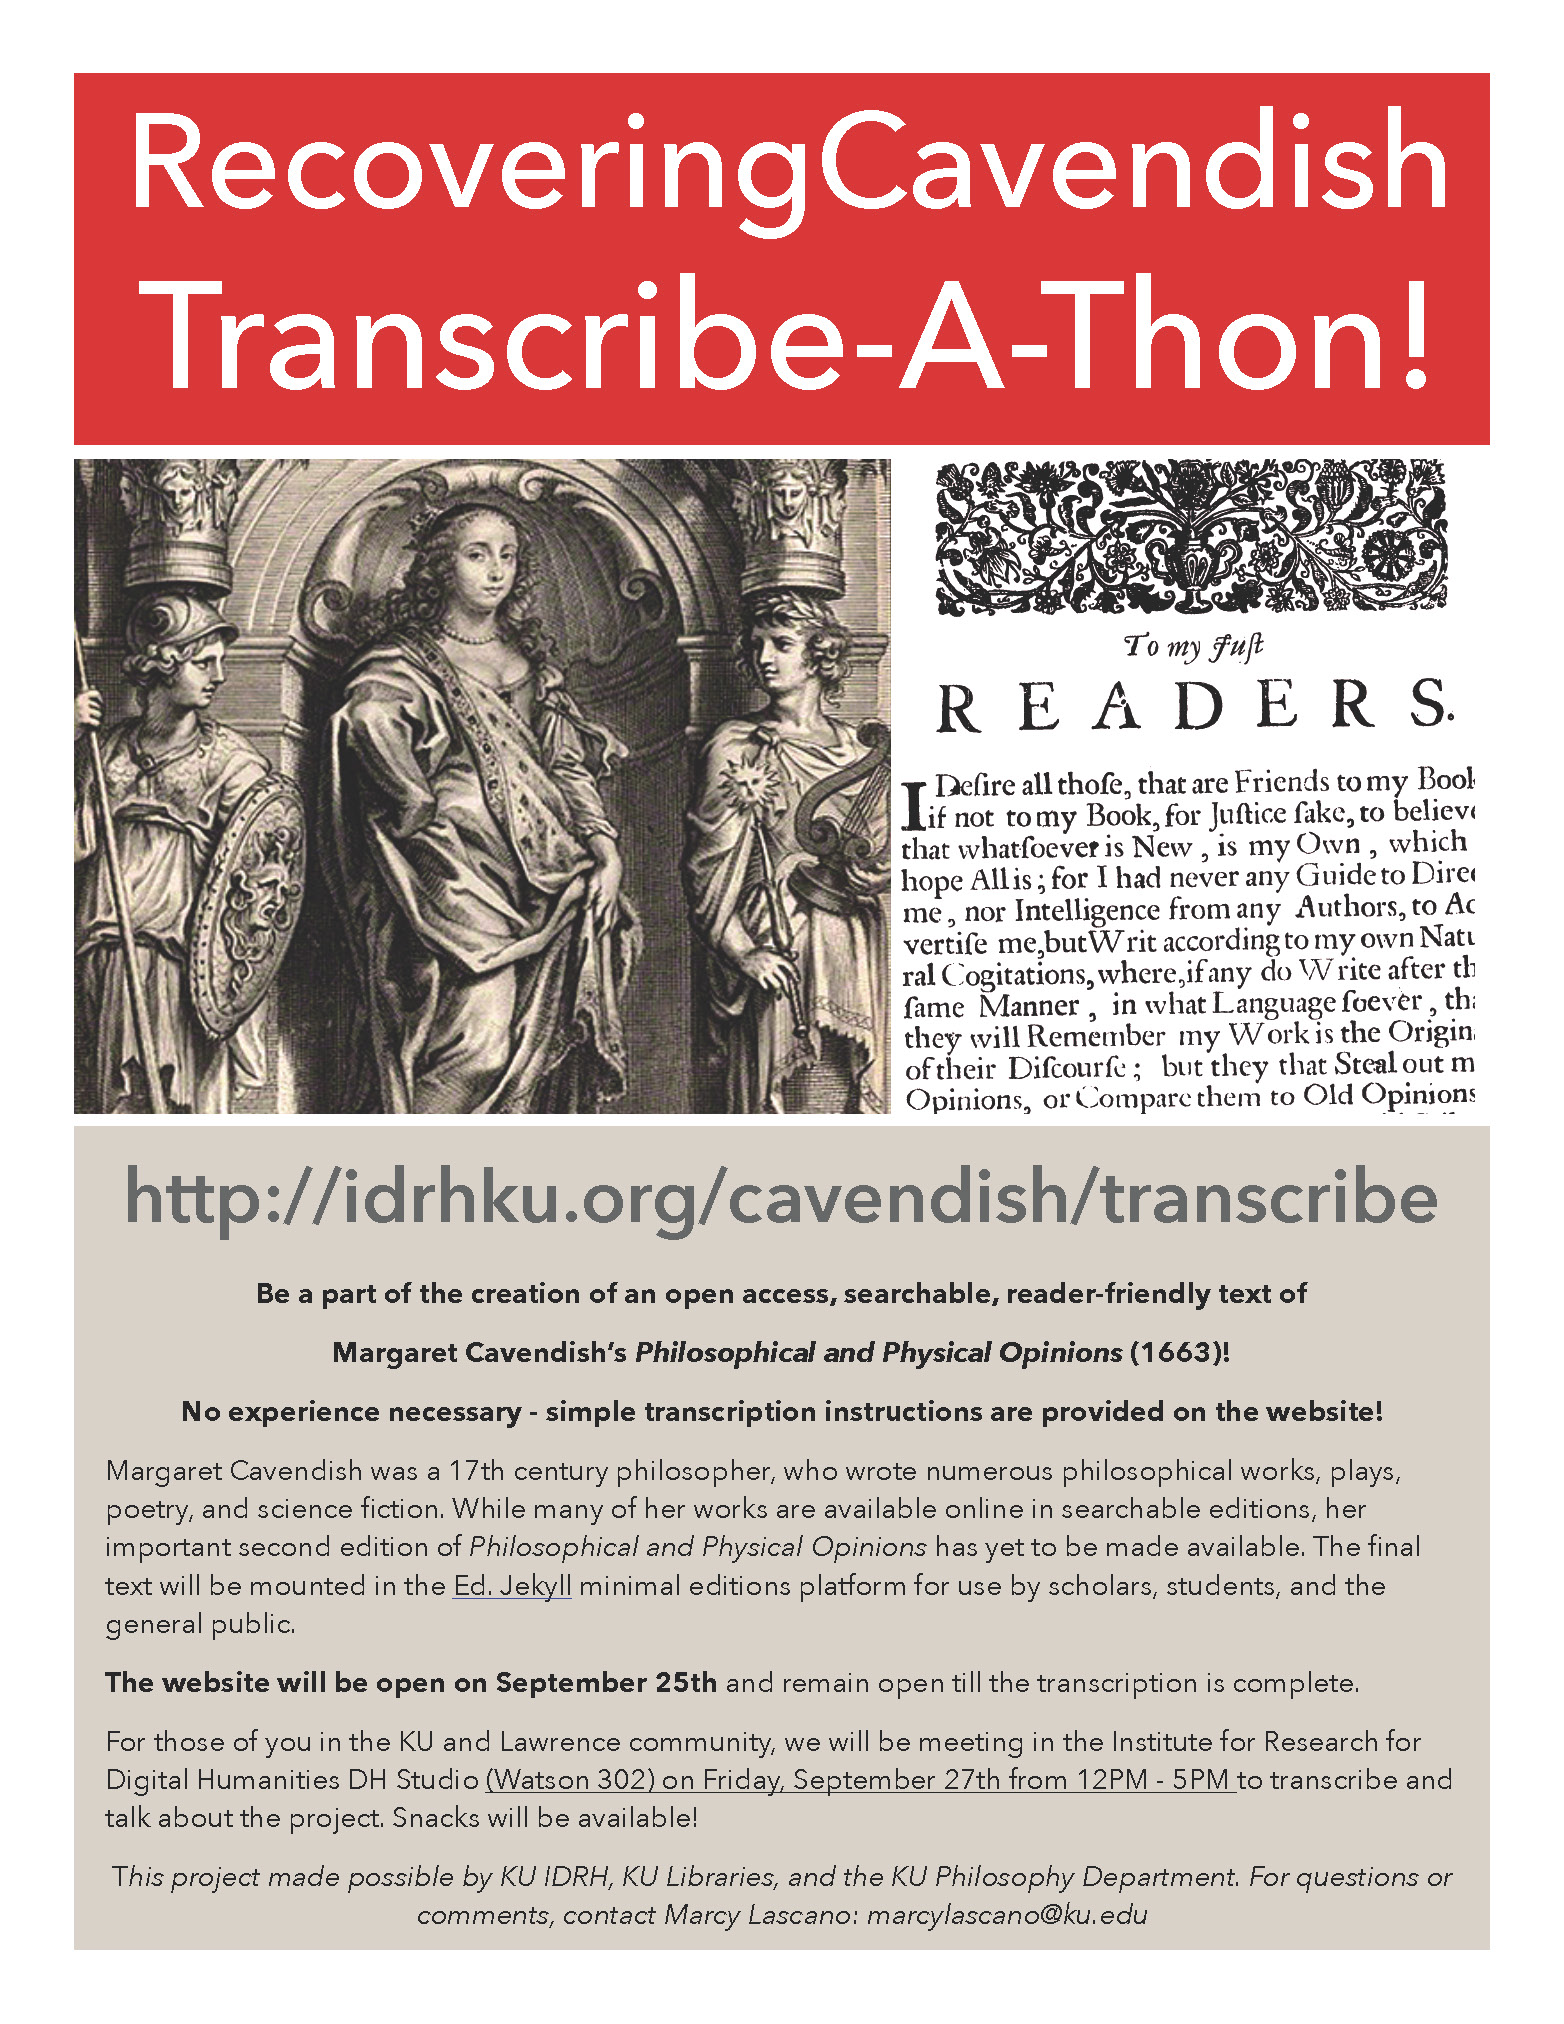 Recovering Cavendish Transcribe-a-Thon, September 27, noon-5:00pm, Watson 302, click link for more info.)